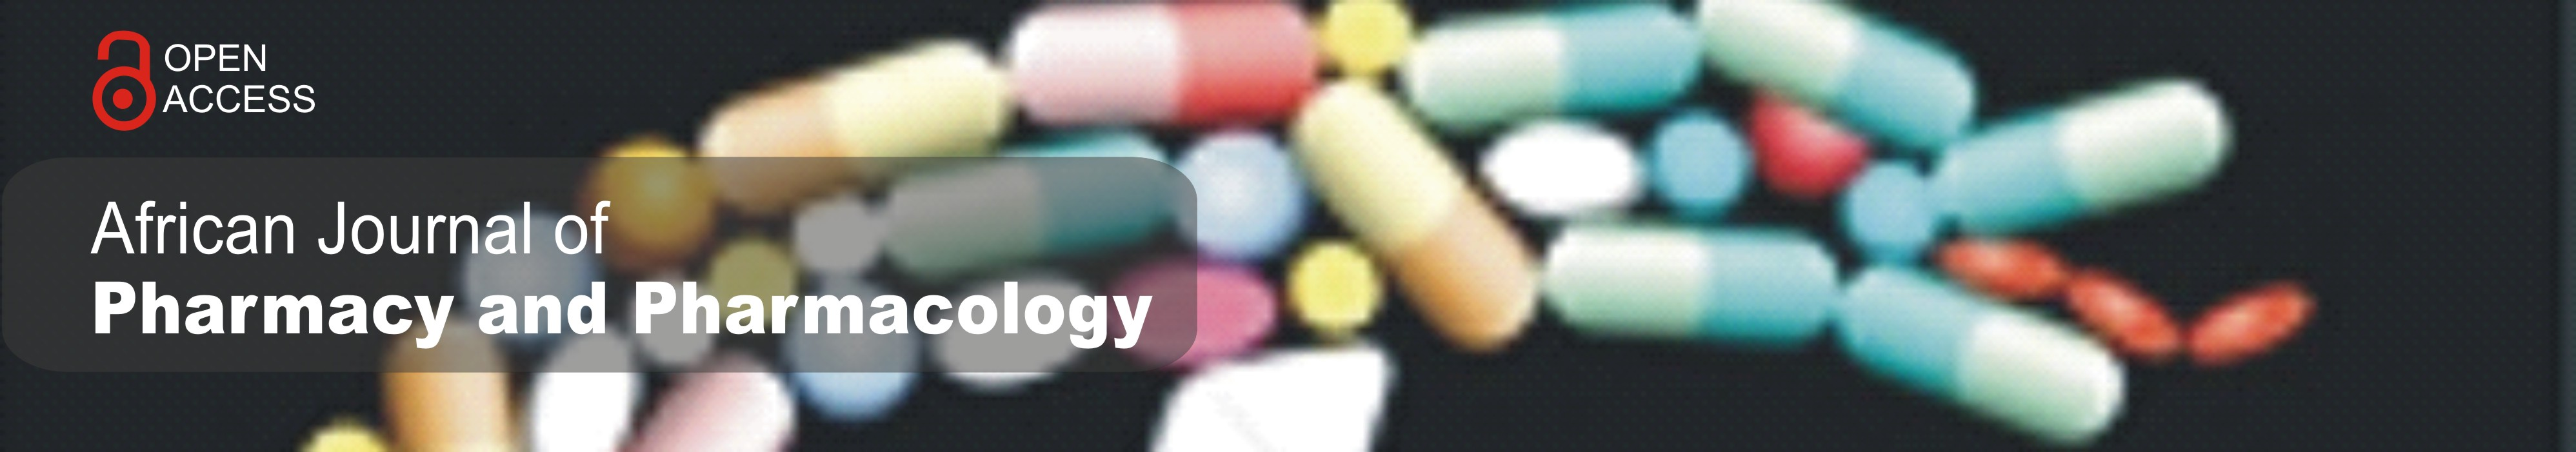 African Journal of Pharmacy and Pharmacology